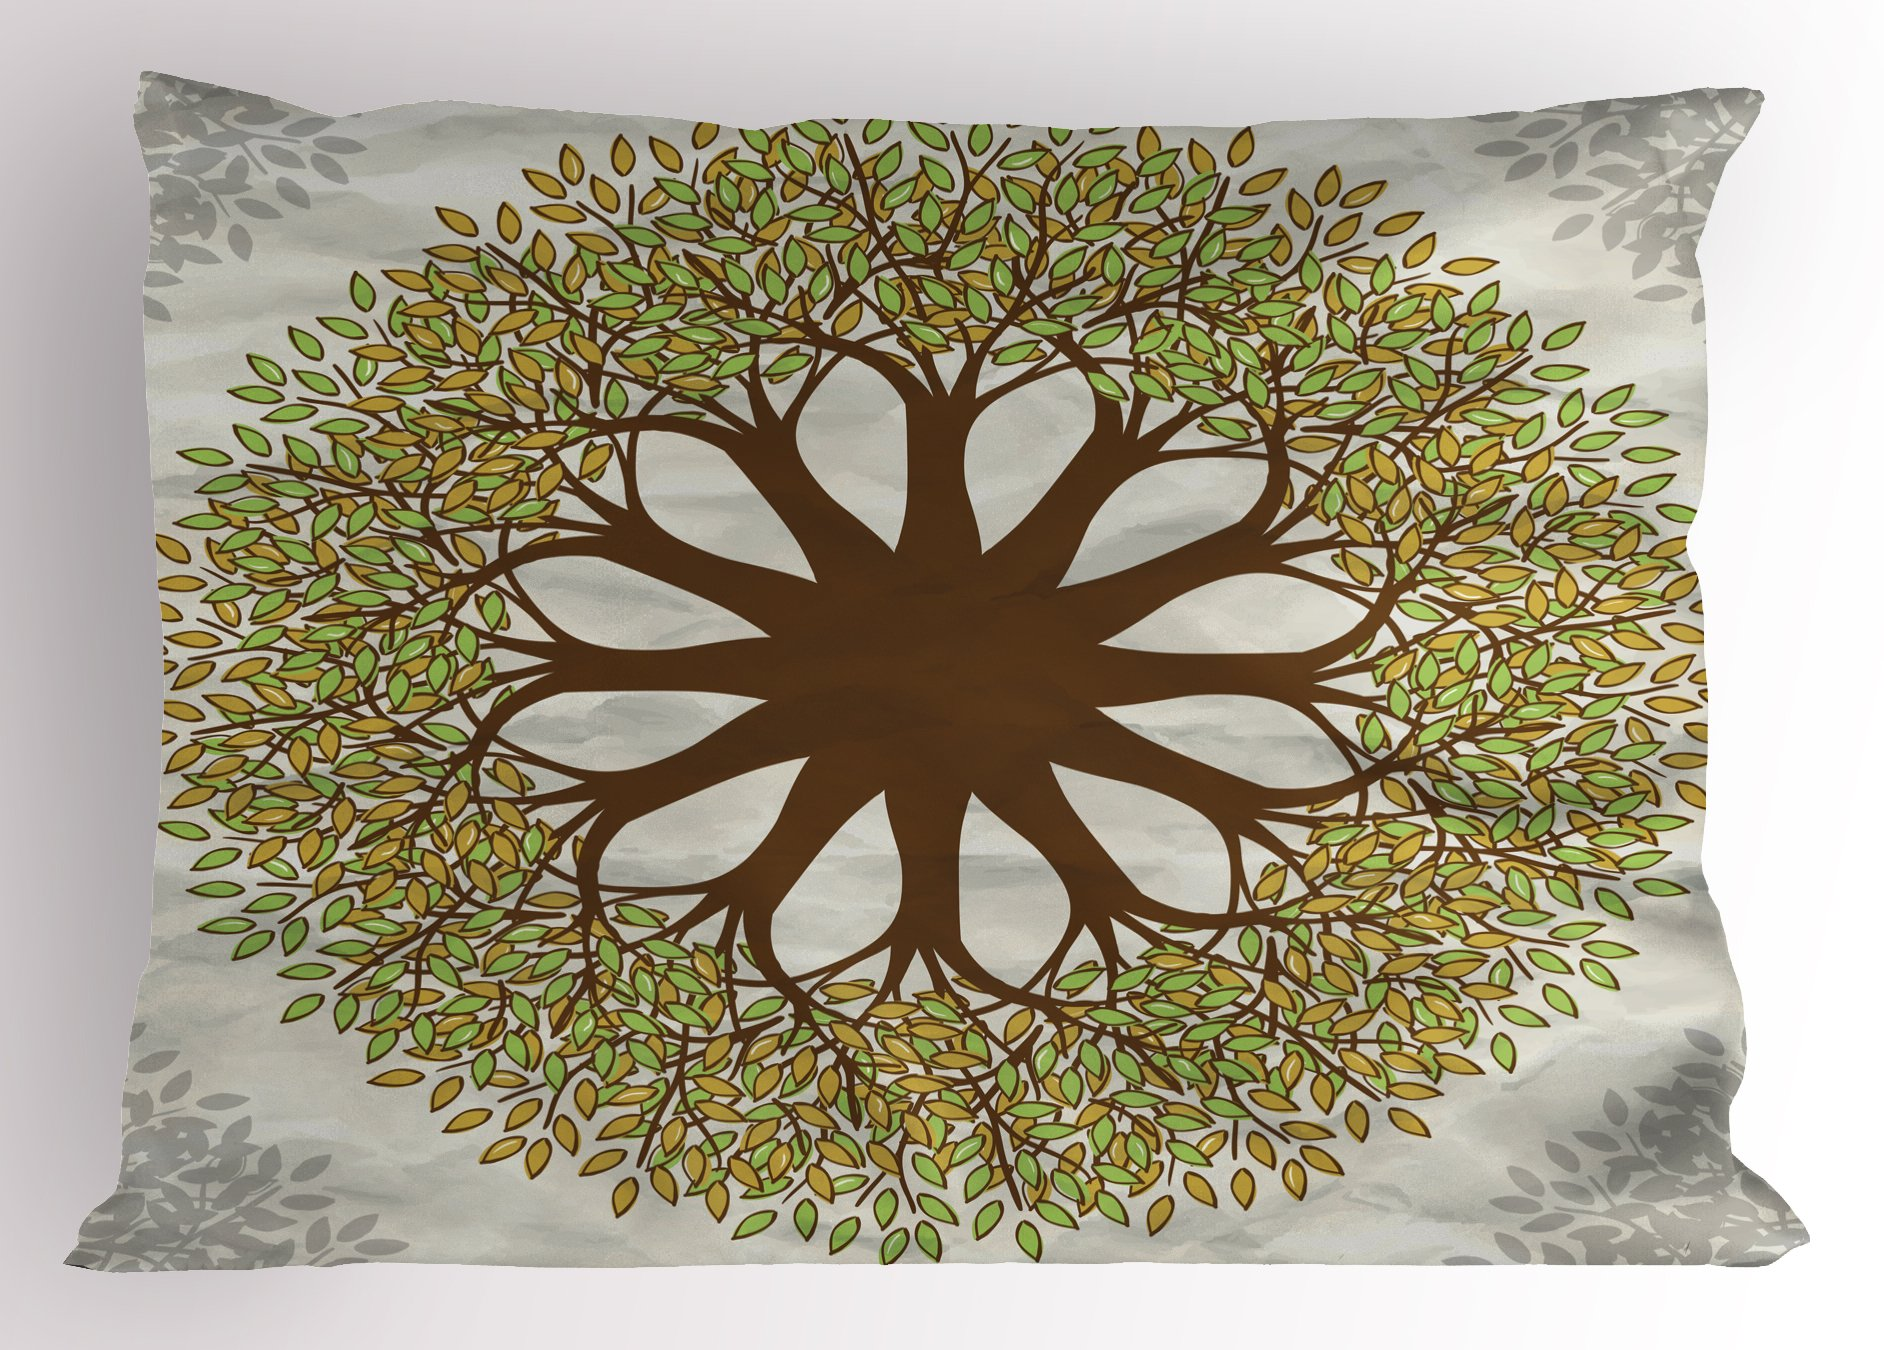 Lunarable Tree of Life Pillow Sham, Indian Mandala Design with Leaves and Woods Round Shape Eastern Cultural Art, Decorative Standard King Size Printed Pillowcase, 36 X 20 inches, Green Brown by Lunarable (Image #1)